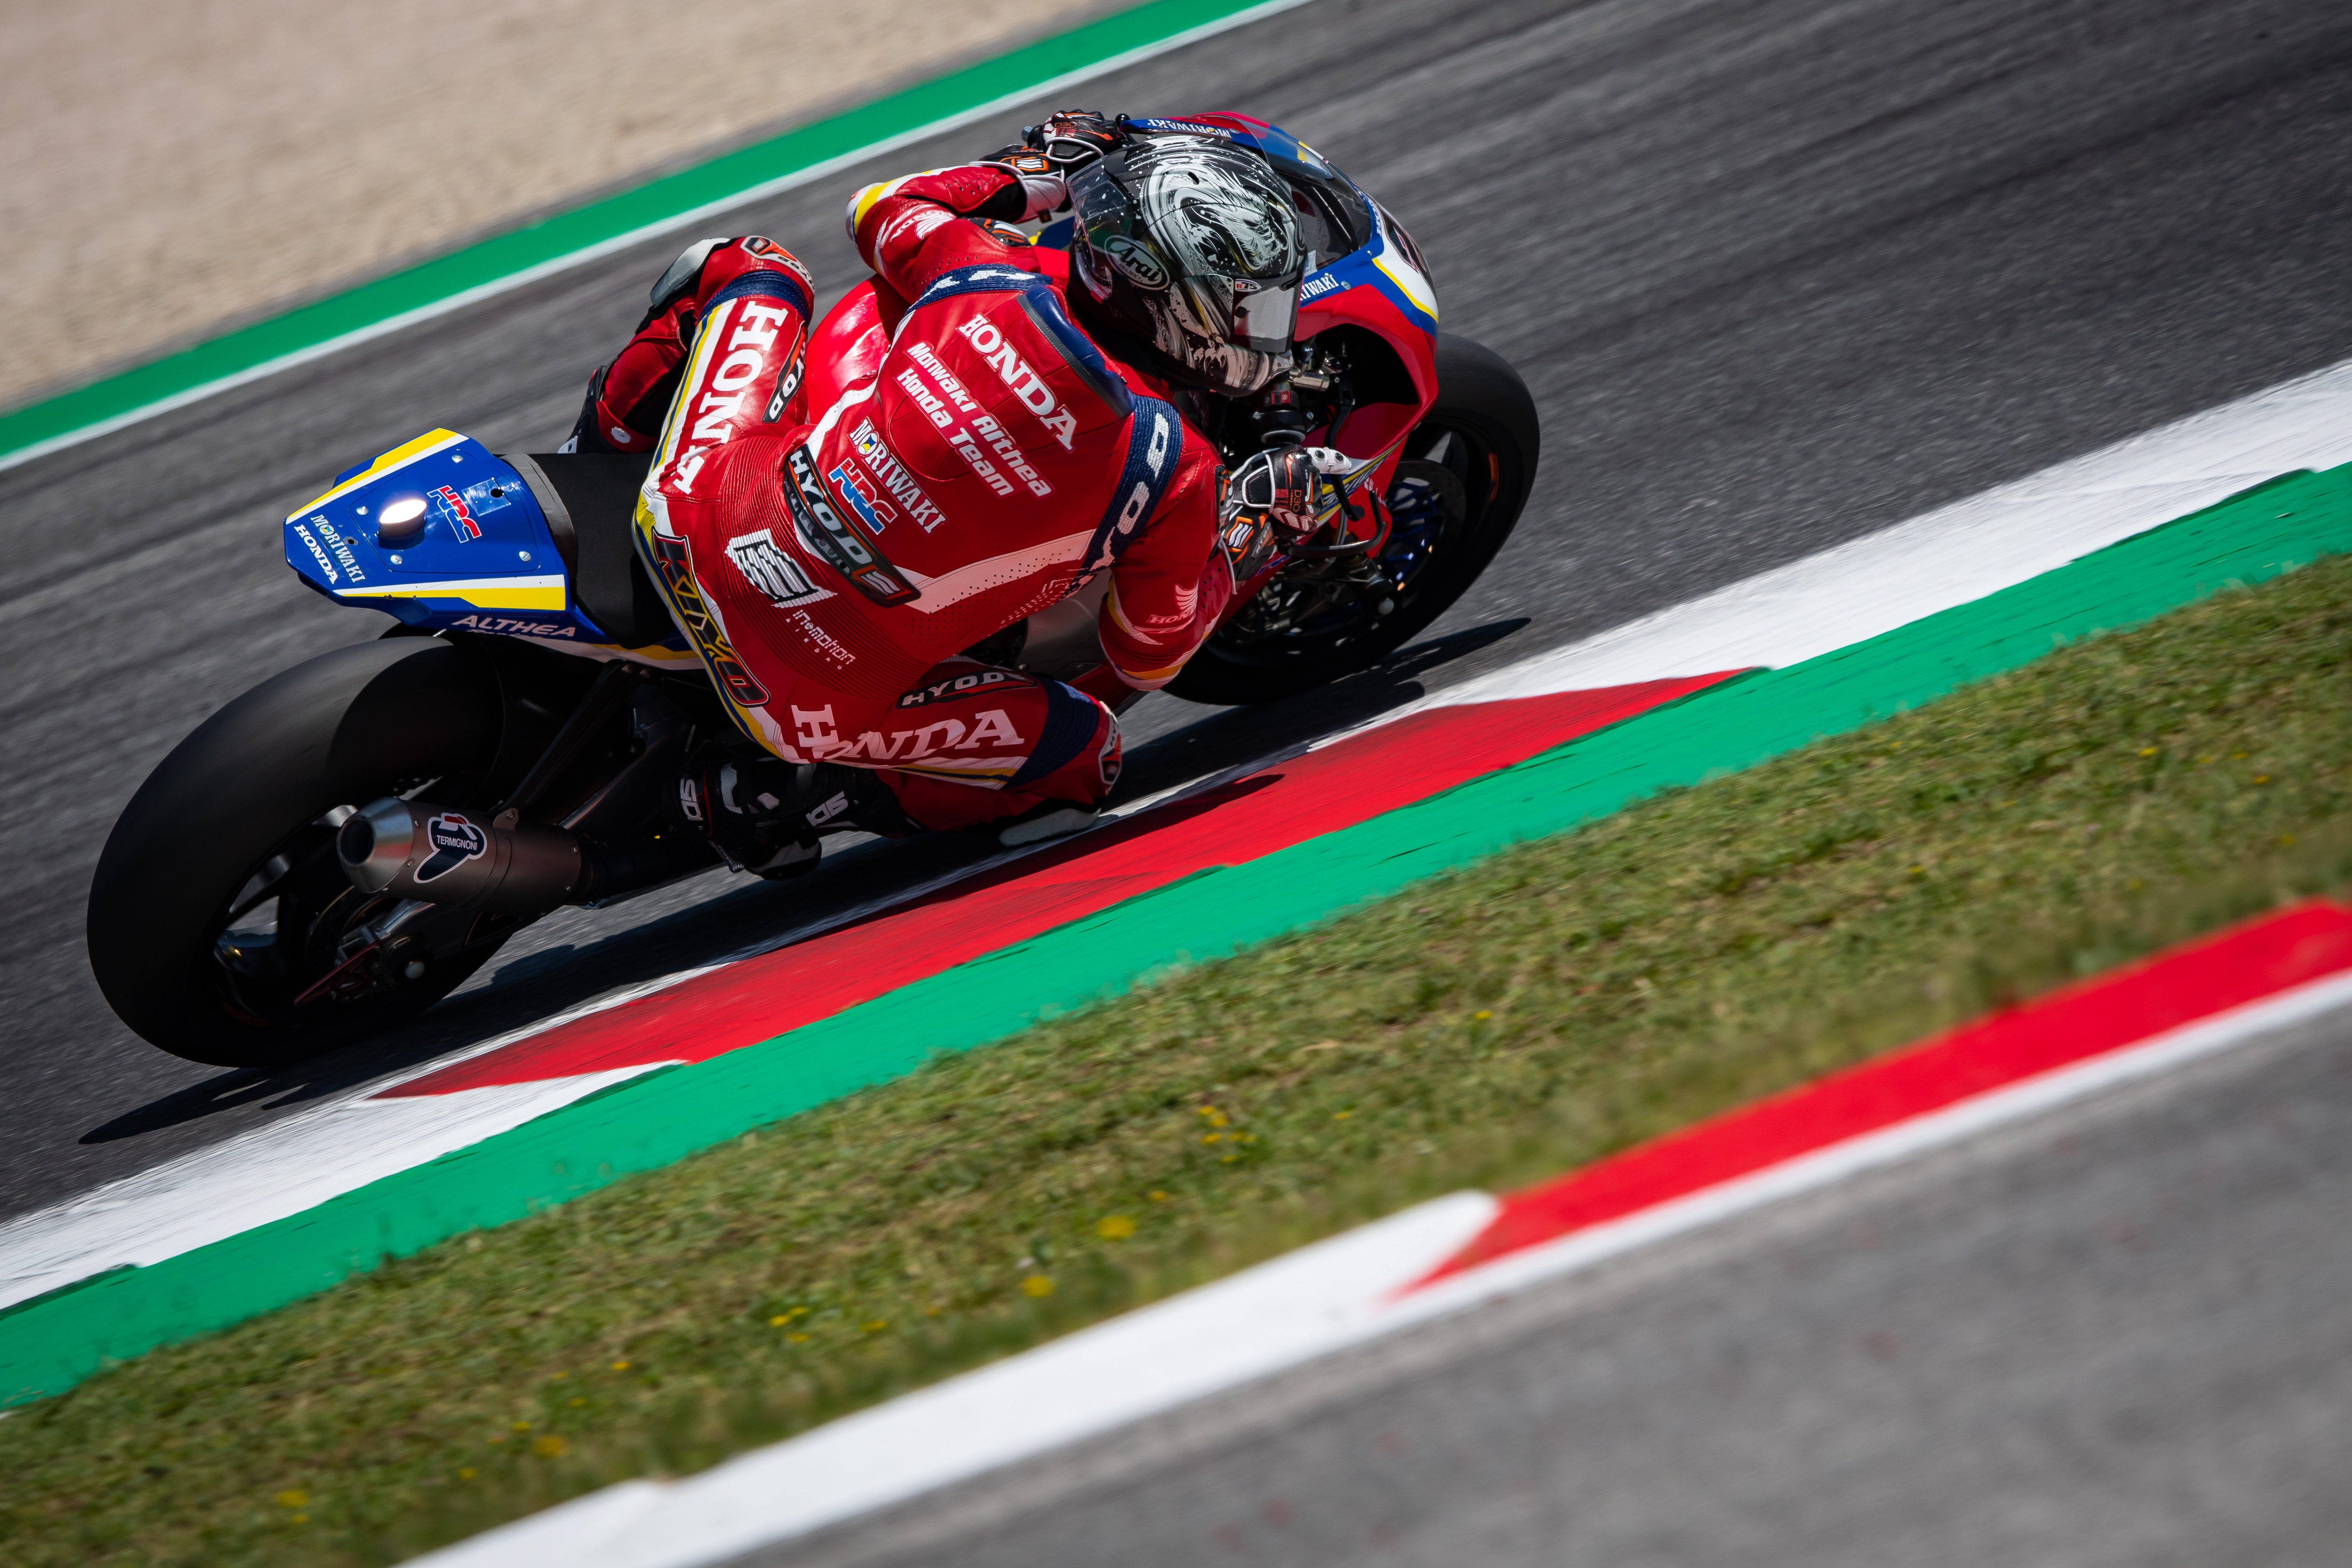 Moriwaki_Althea_Honda_Team_Misano_425